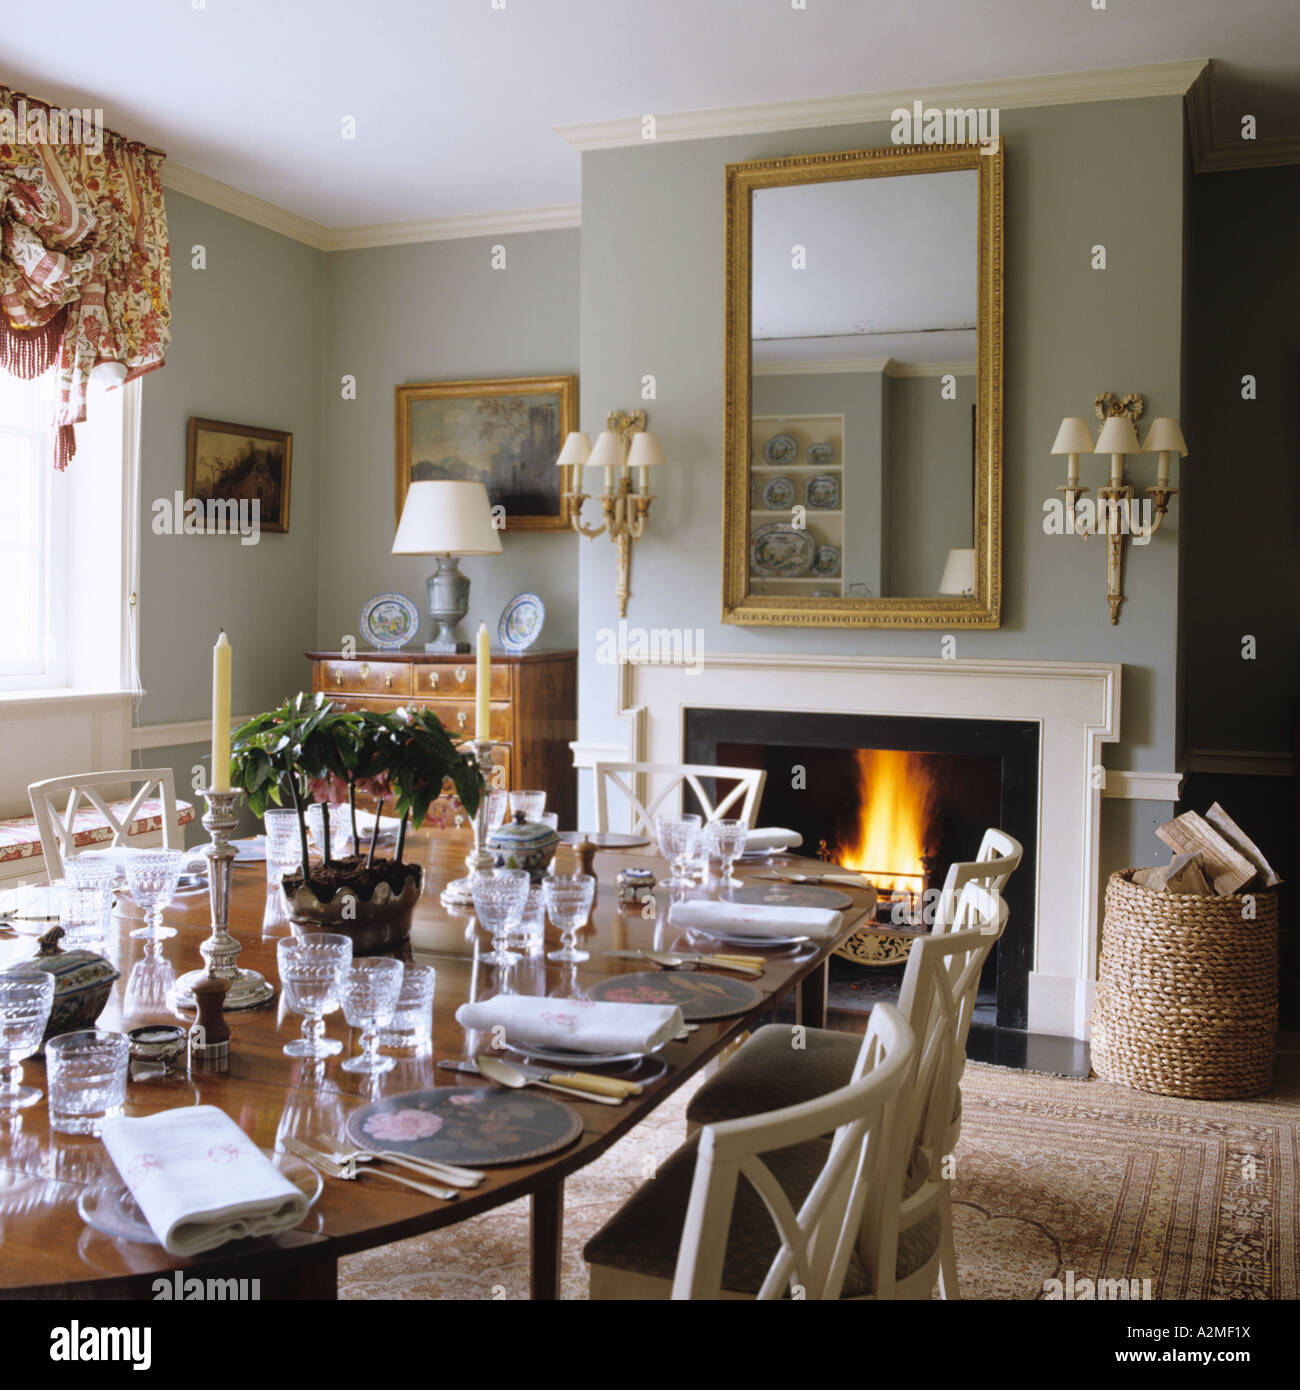 Dining Room With Laid Table And Lit Fire In English